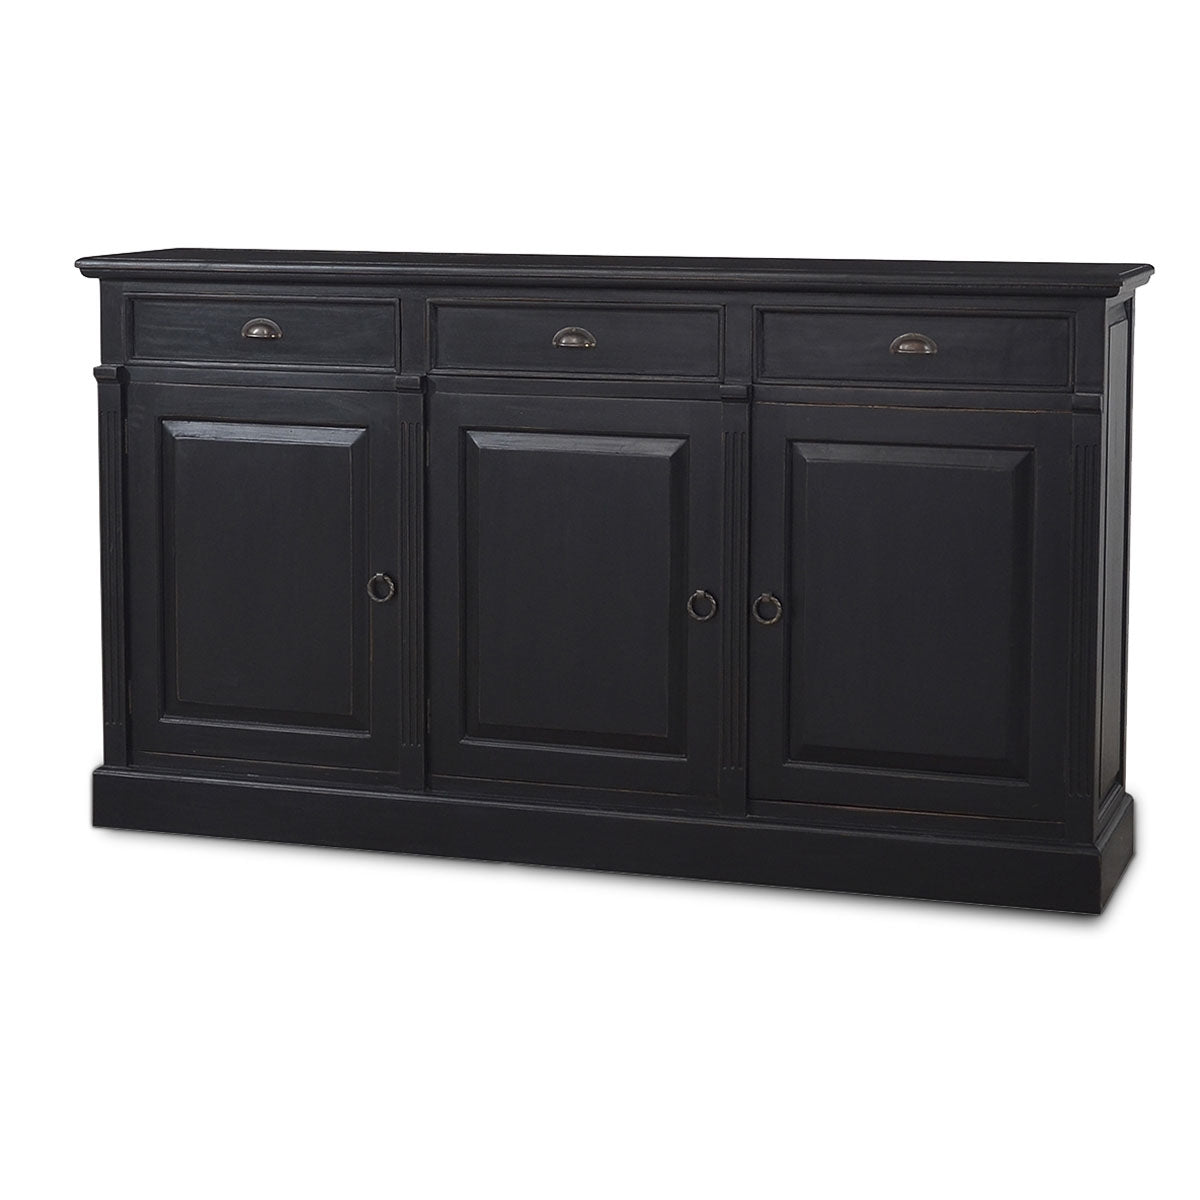 Cottage 3 Door Sideboard Buffet Black